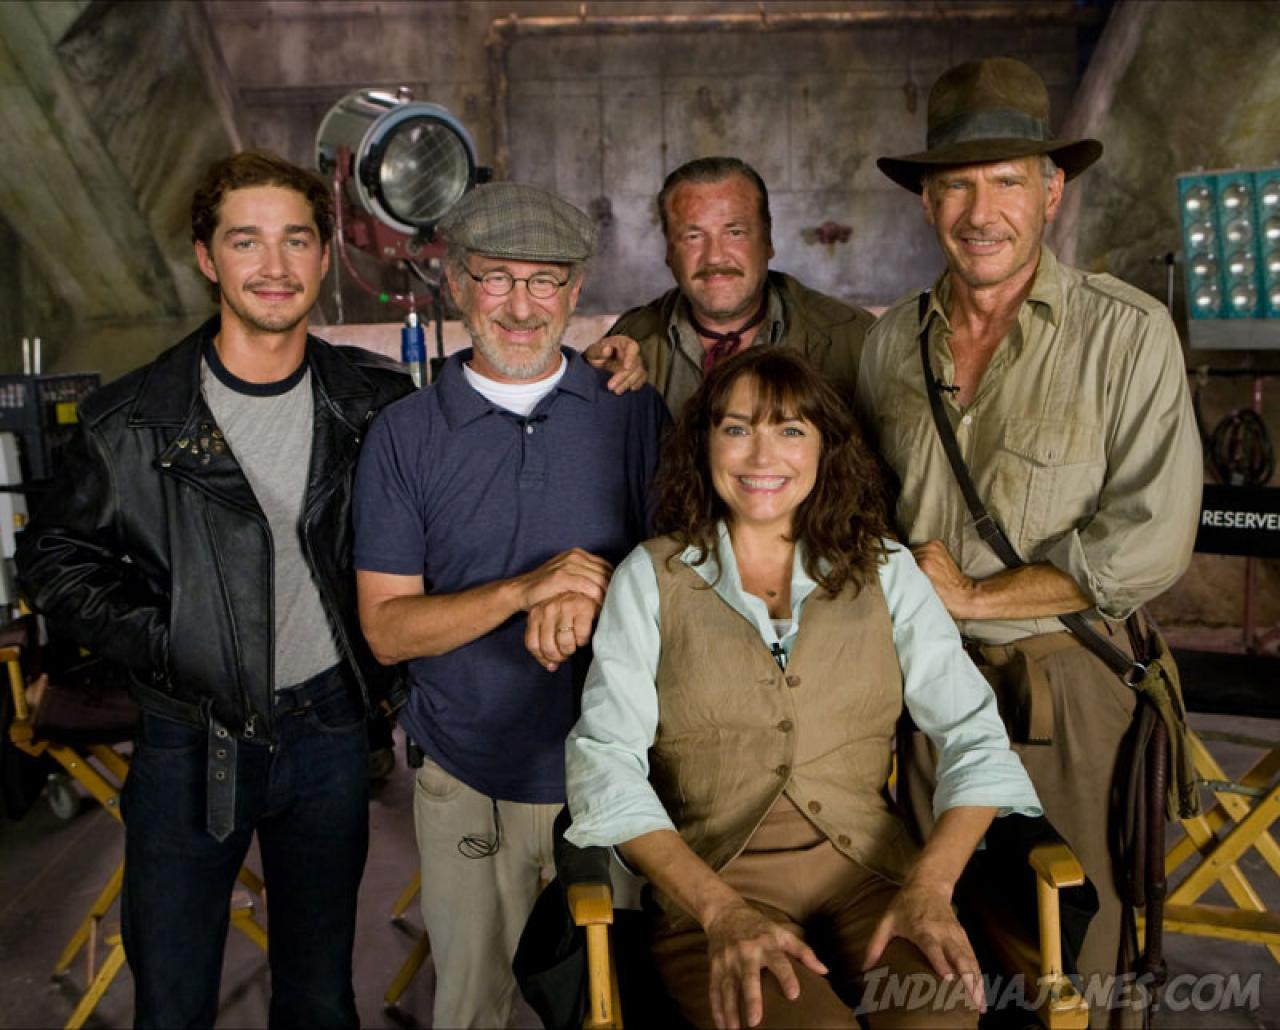 Indy 4 Crystal Skull Screentime